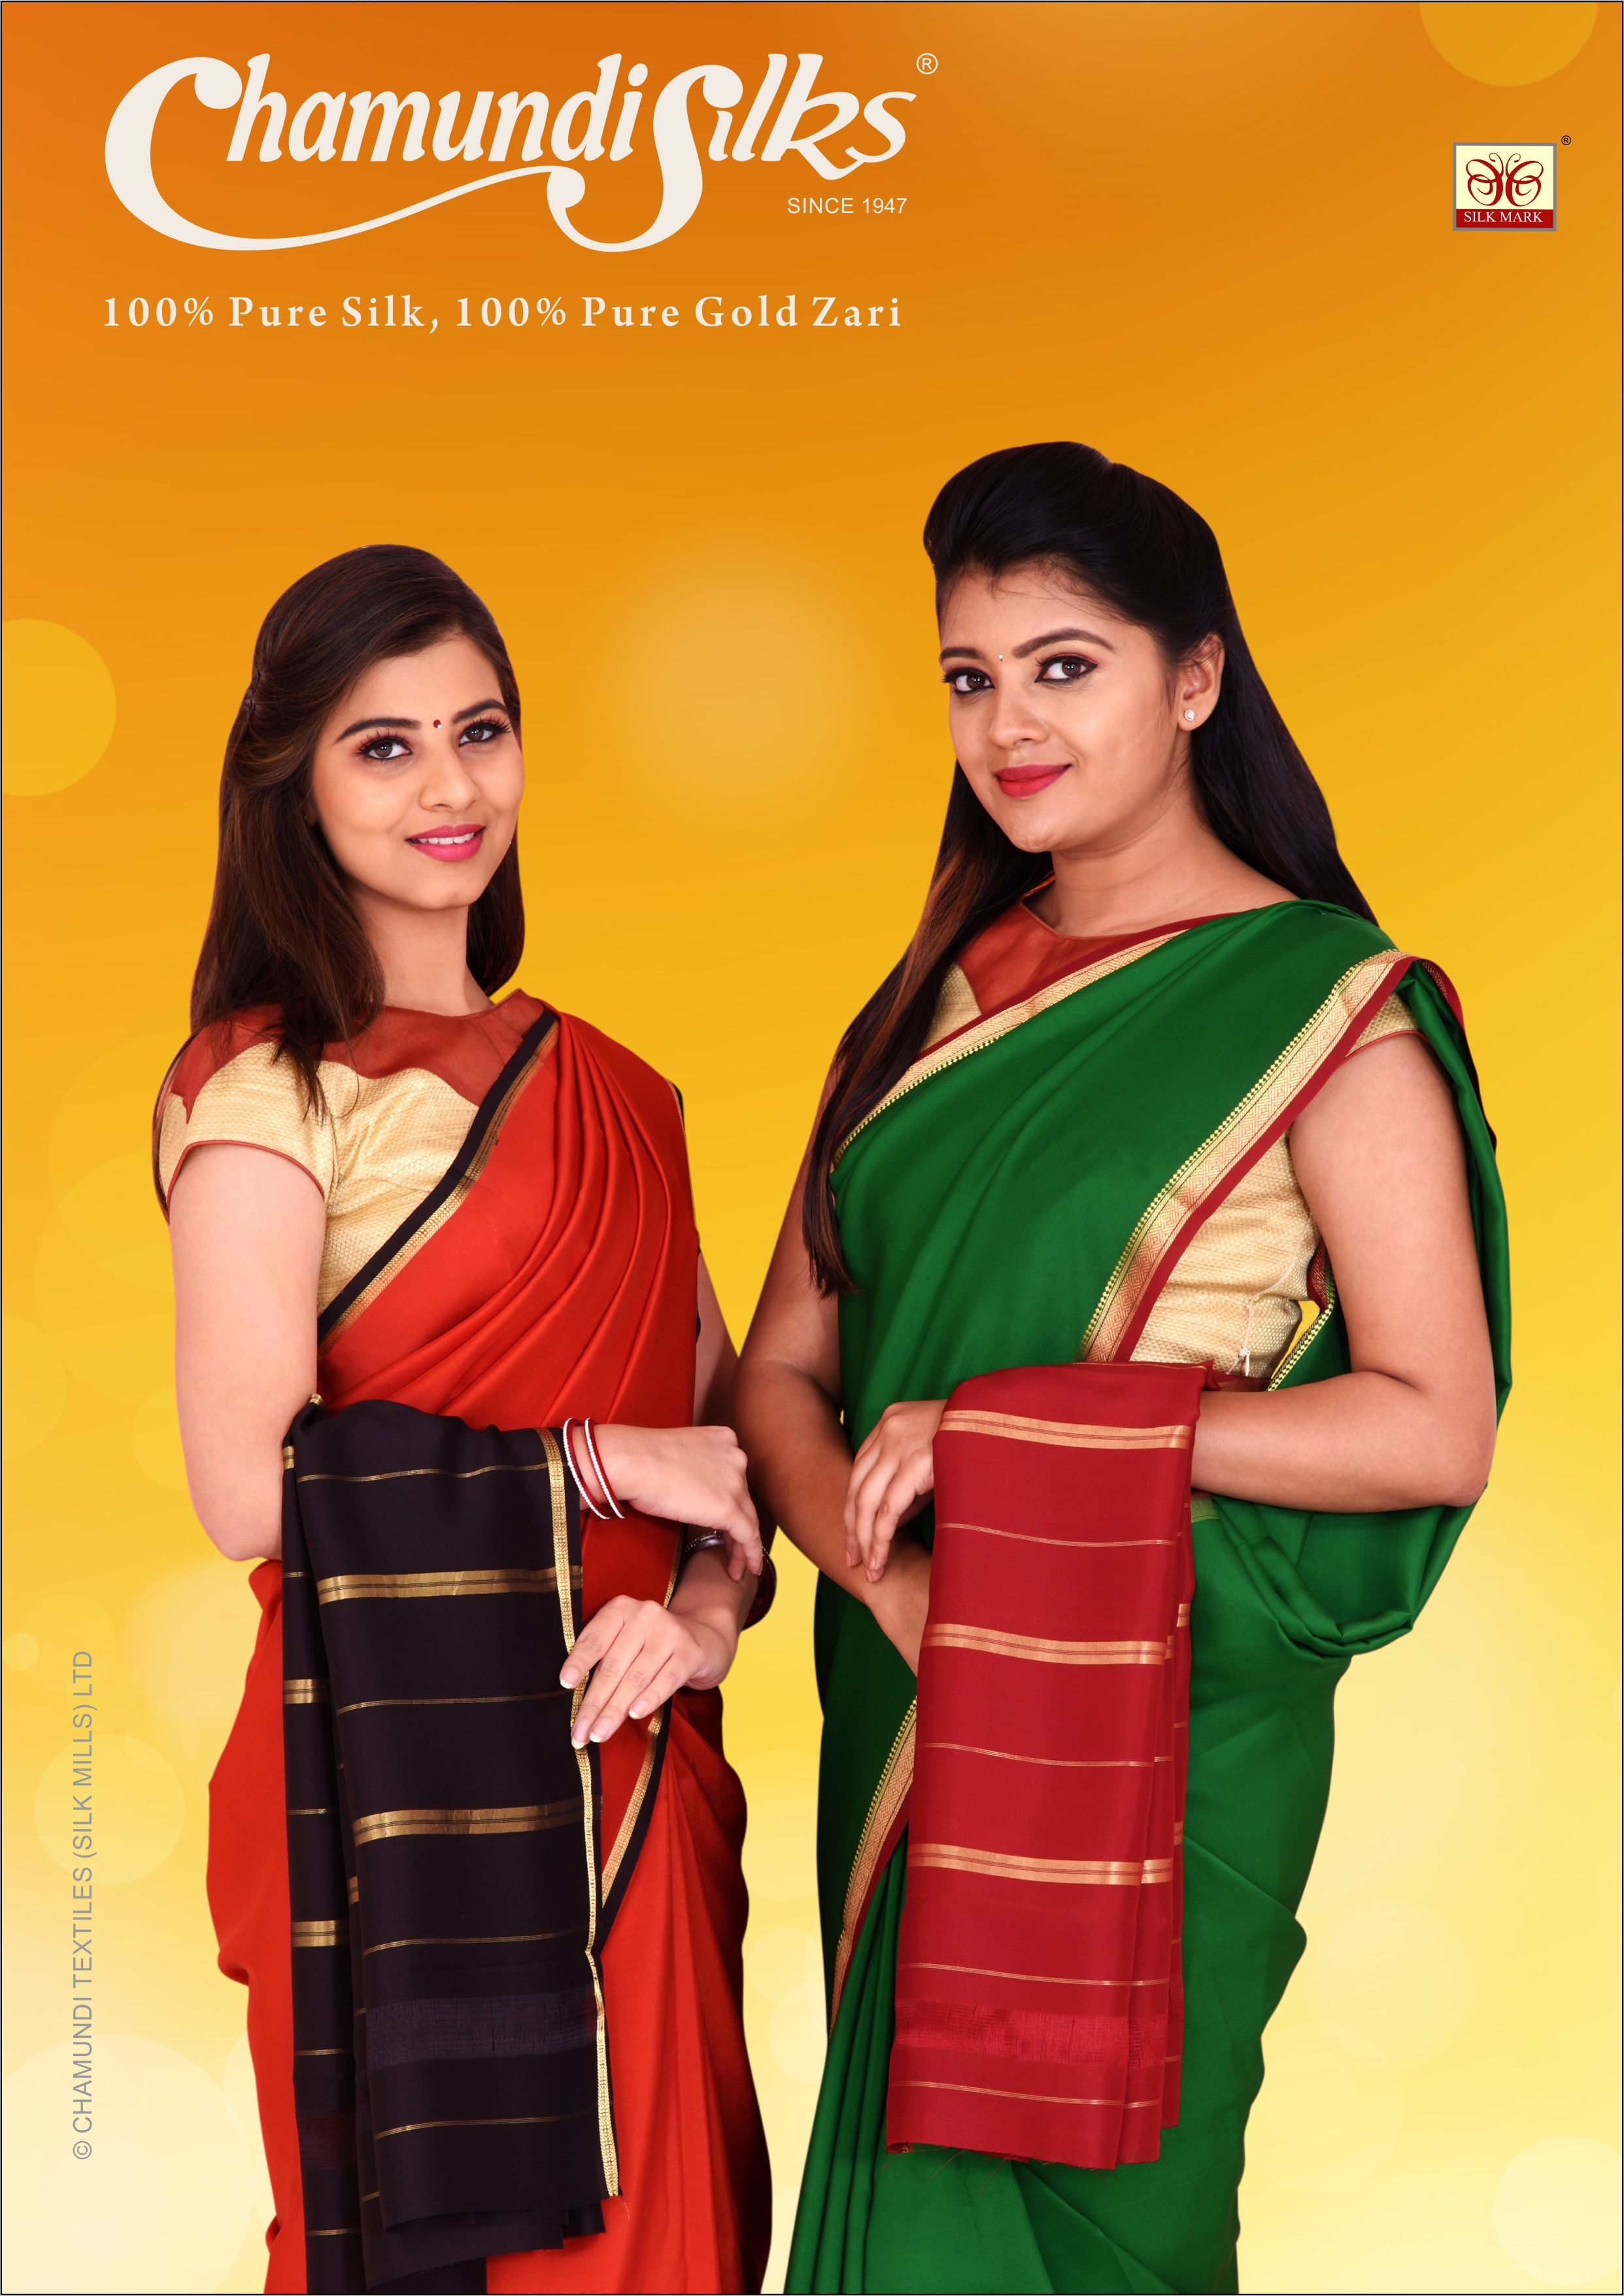 71a287ce1af Usher in prosperity and happiness in fine silk! Iniya Tamil Puthandu  Vazhthukkal!